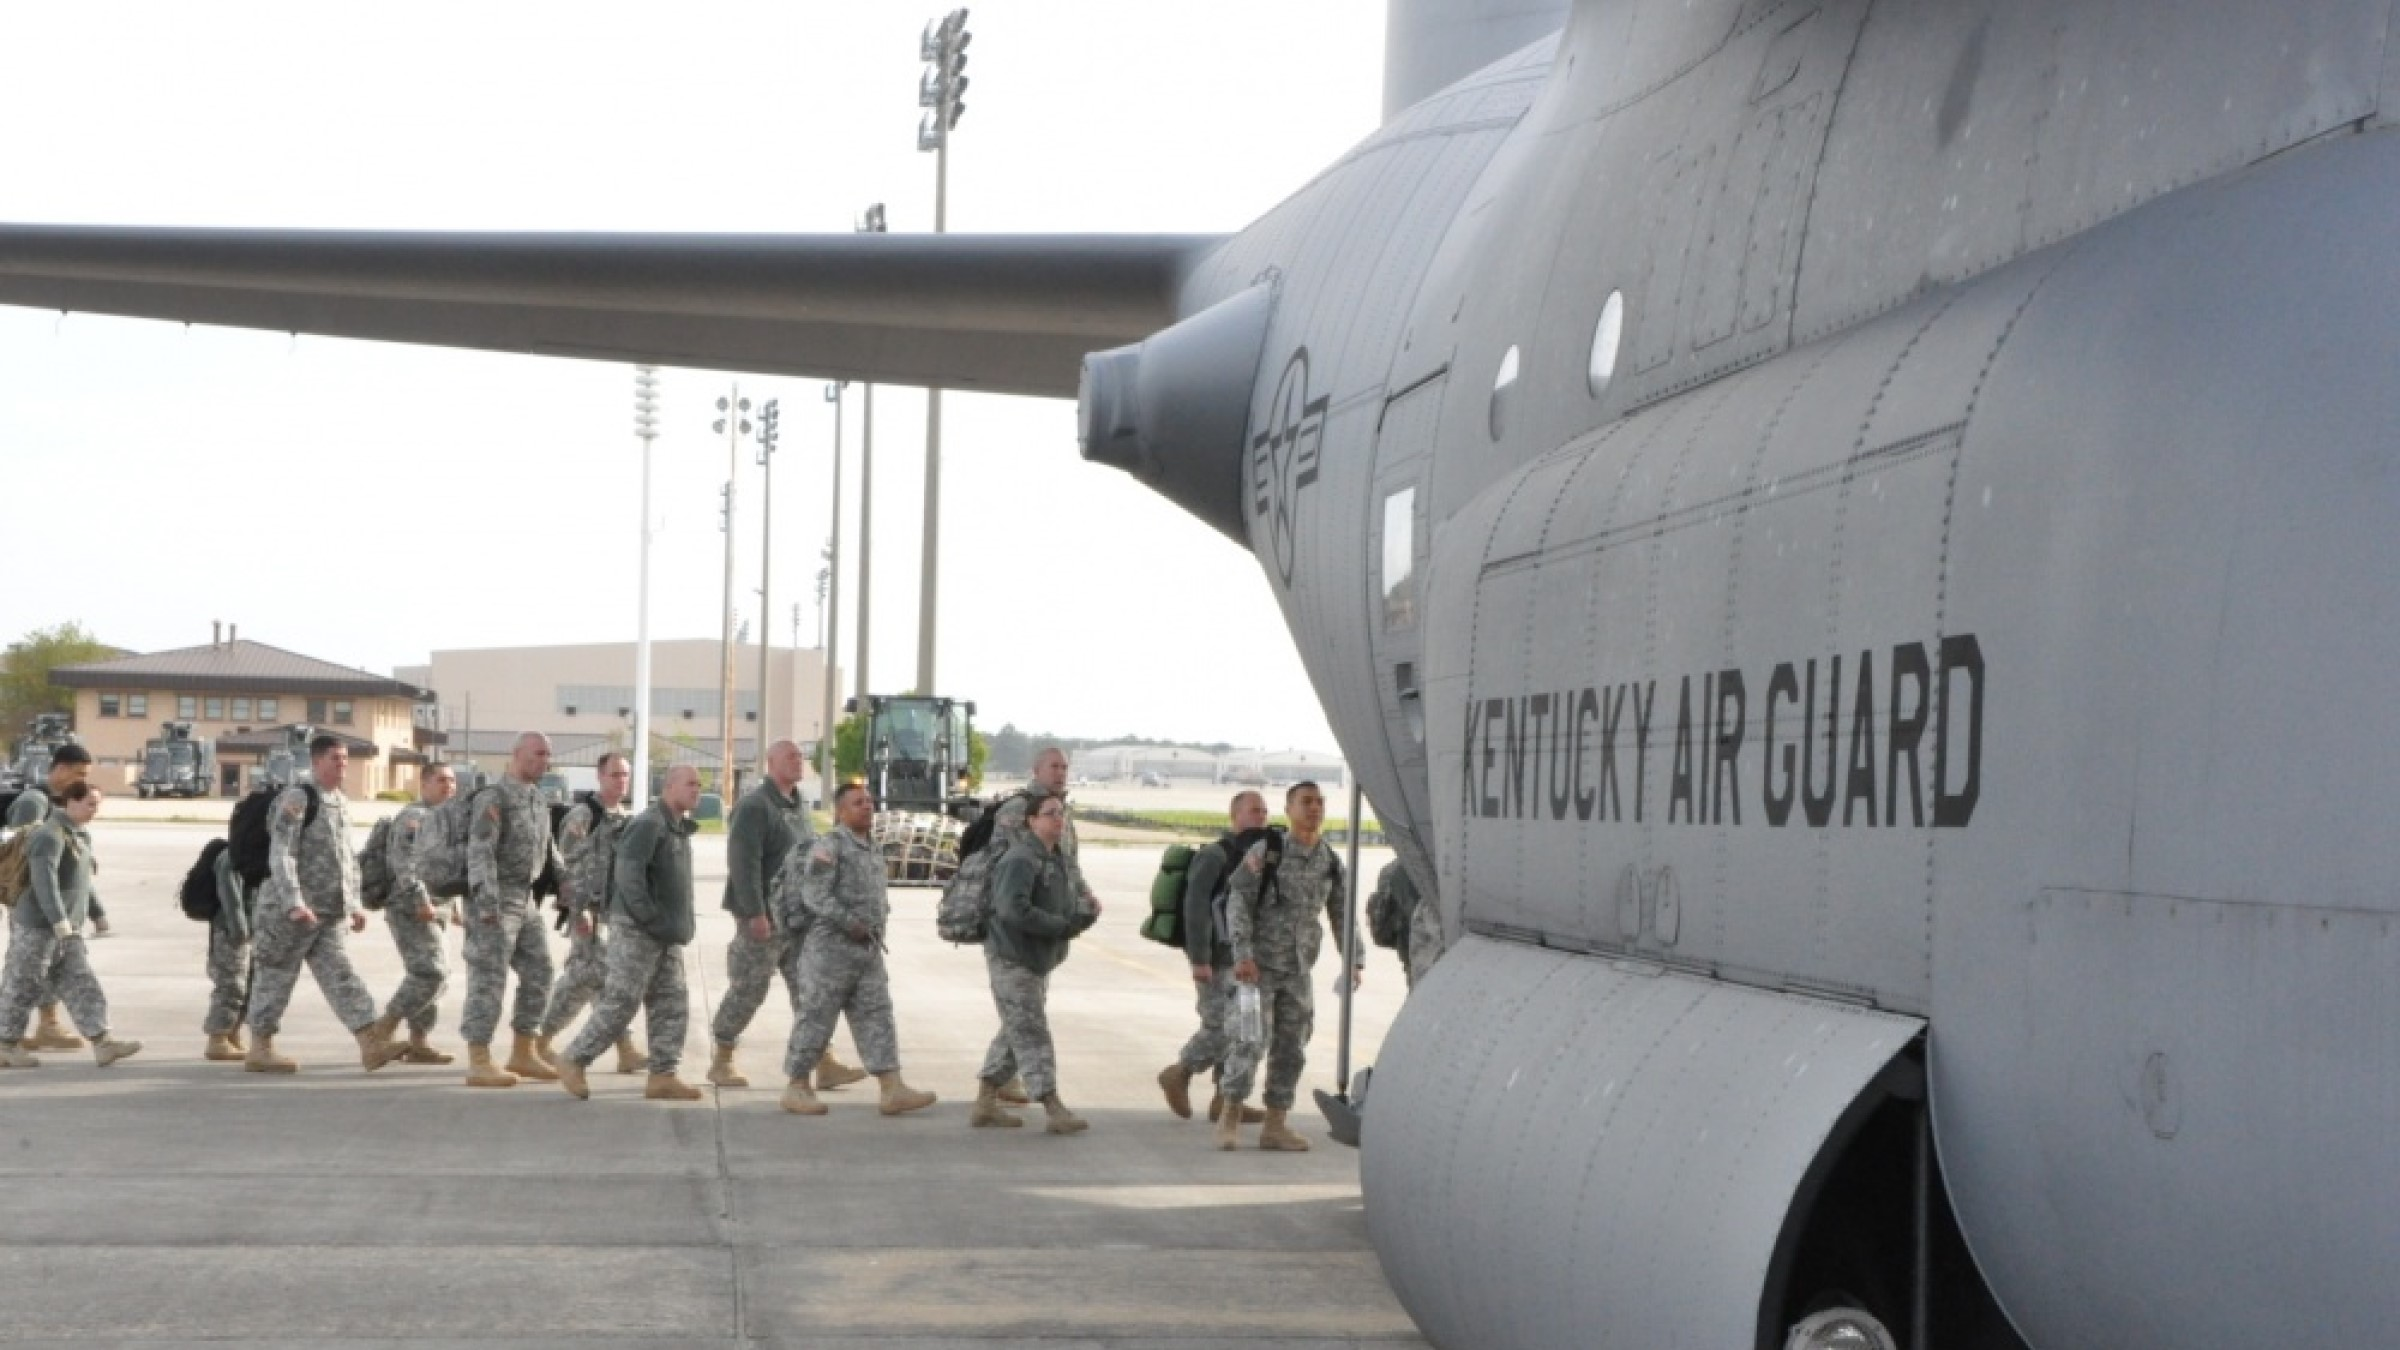 A group of National Guard soldiers board a military cargo plan after an exercise.